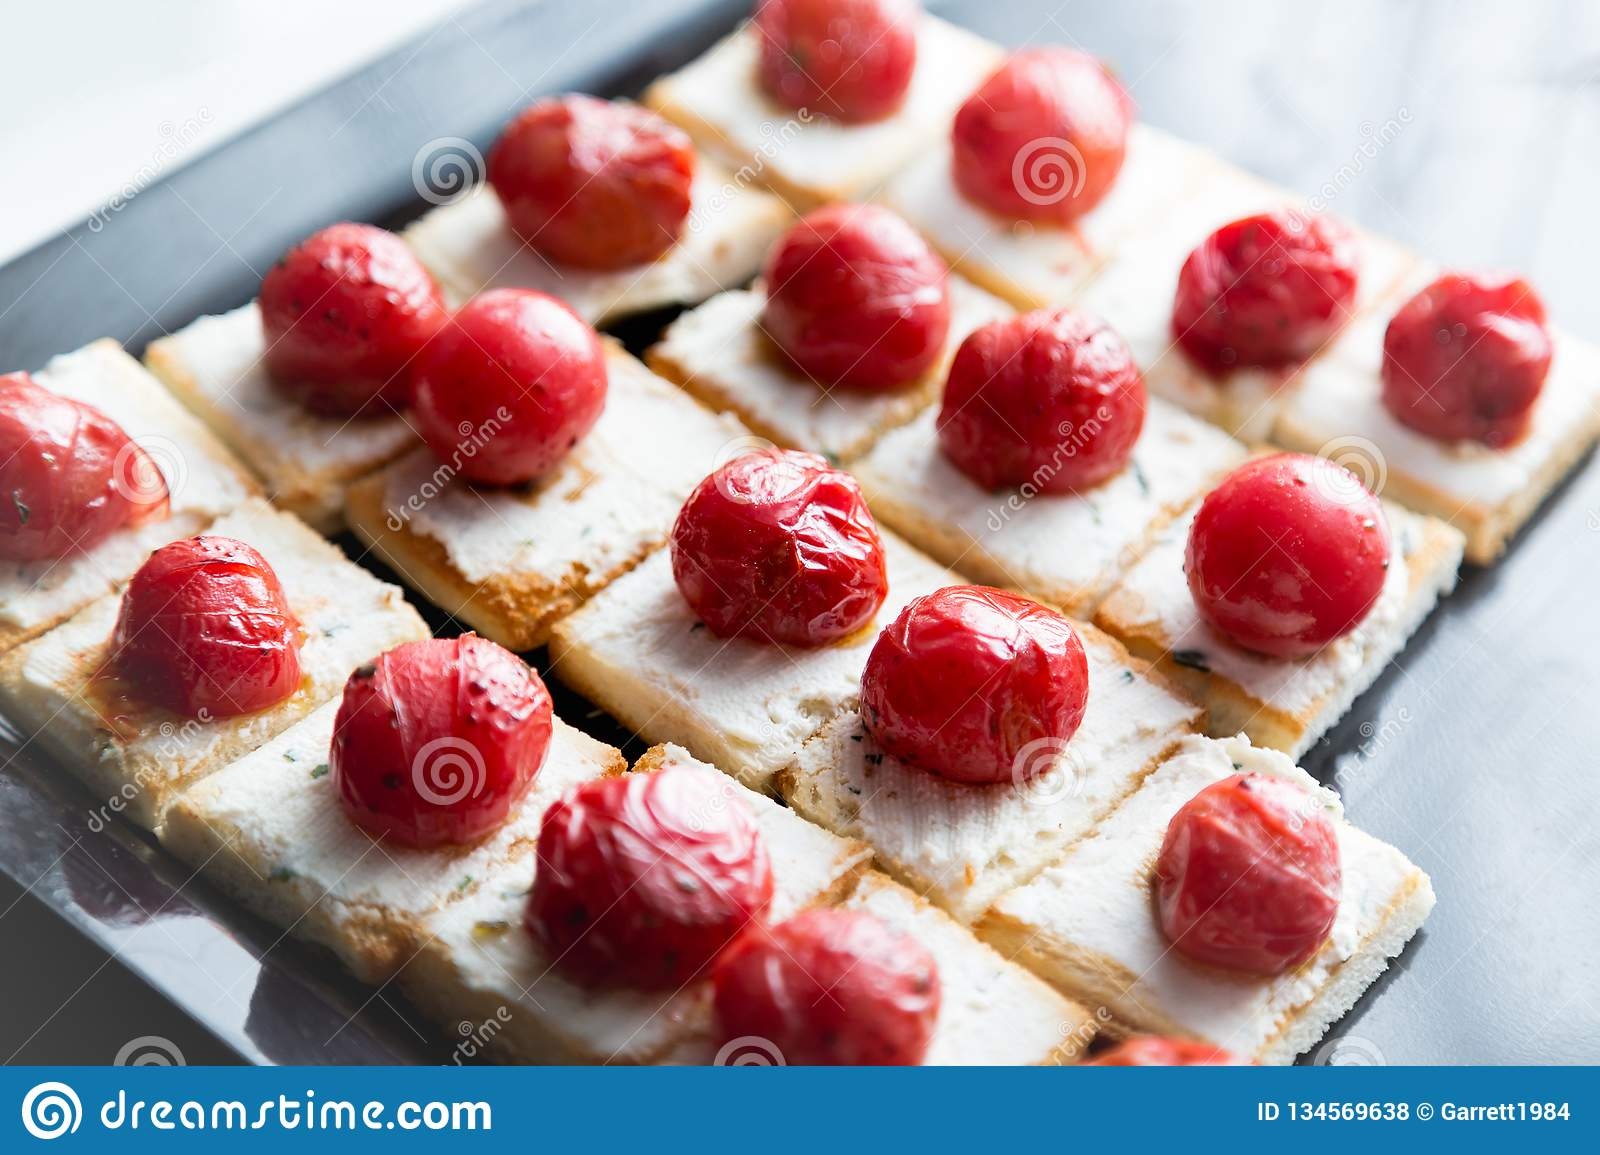 Little sandwiches with cheese and grilled cherry tomato. Catering food